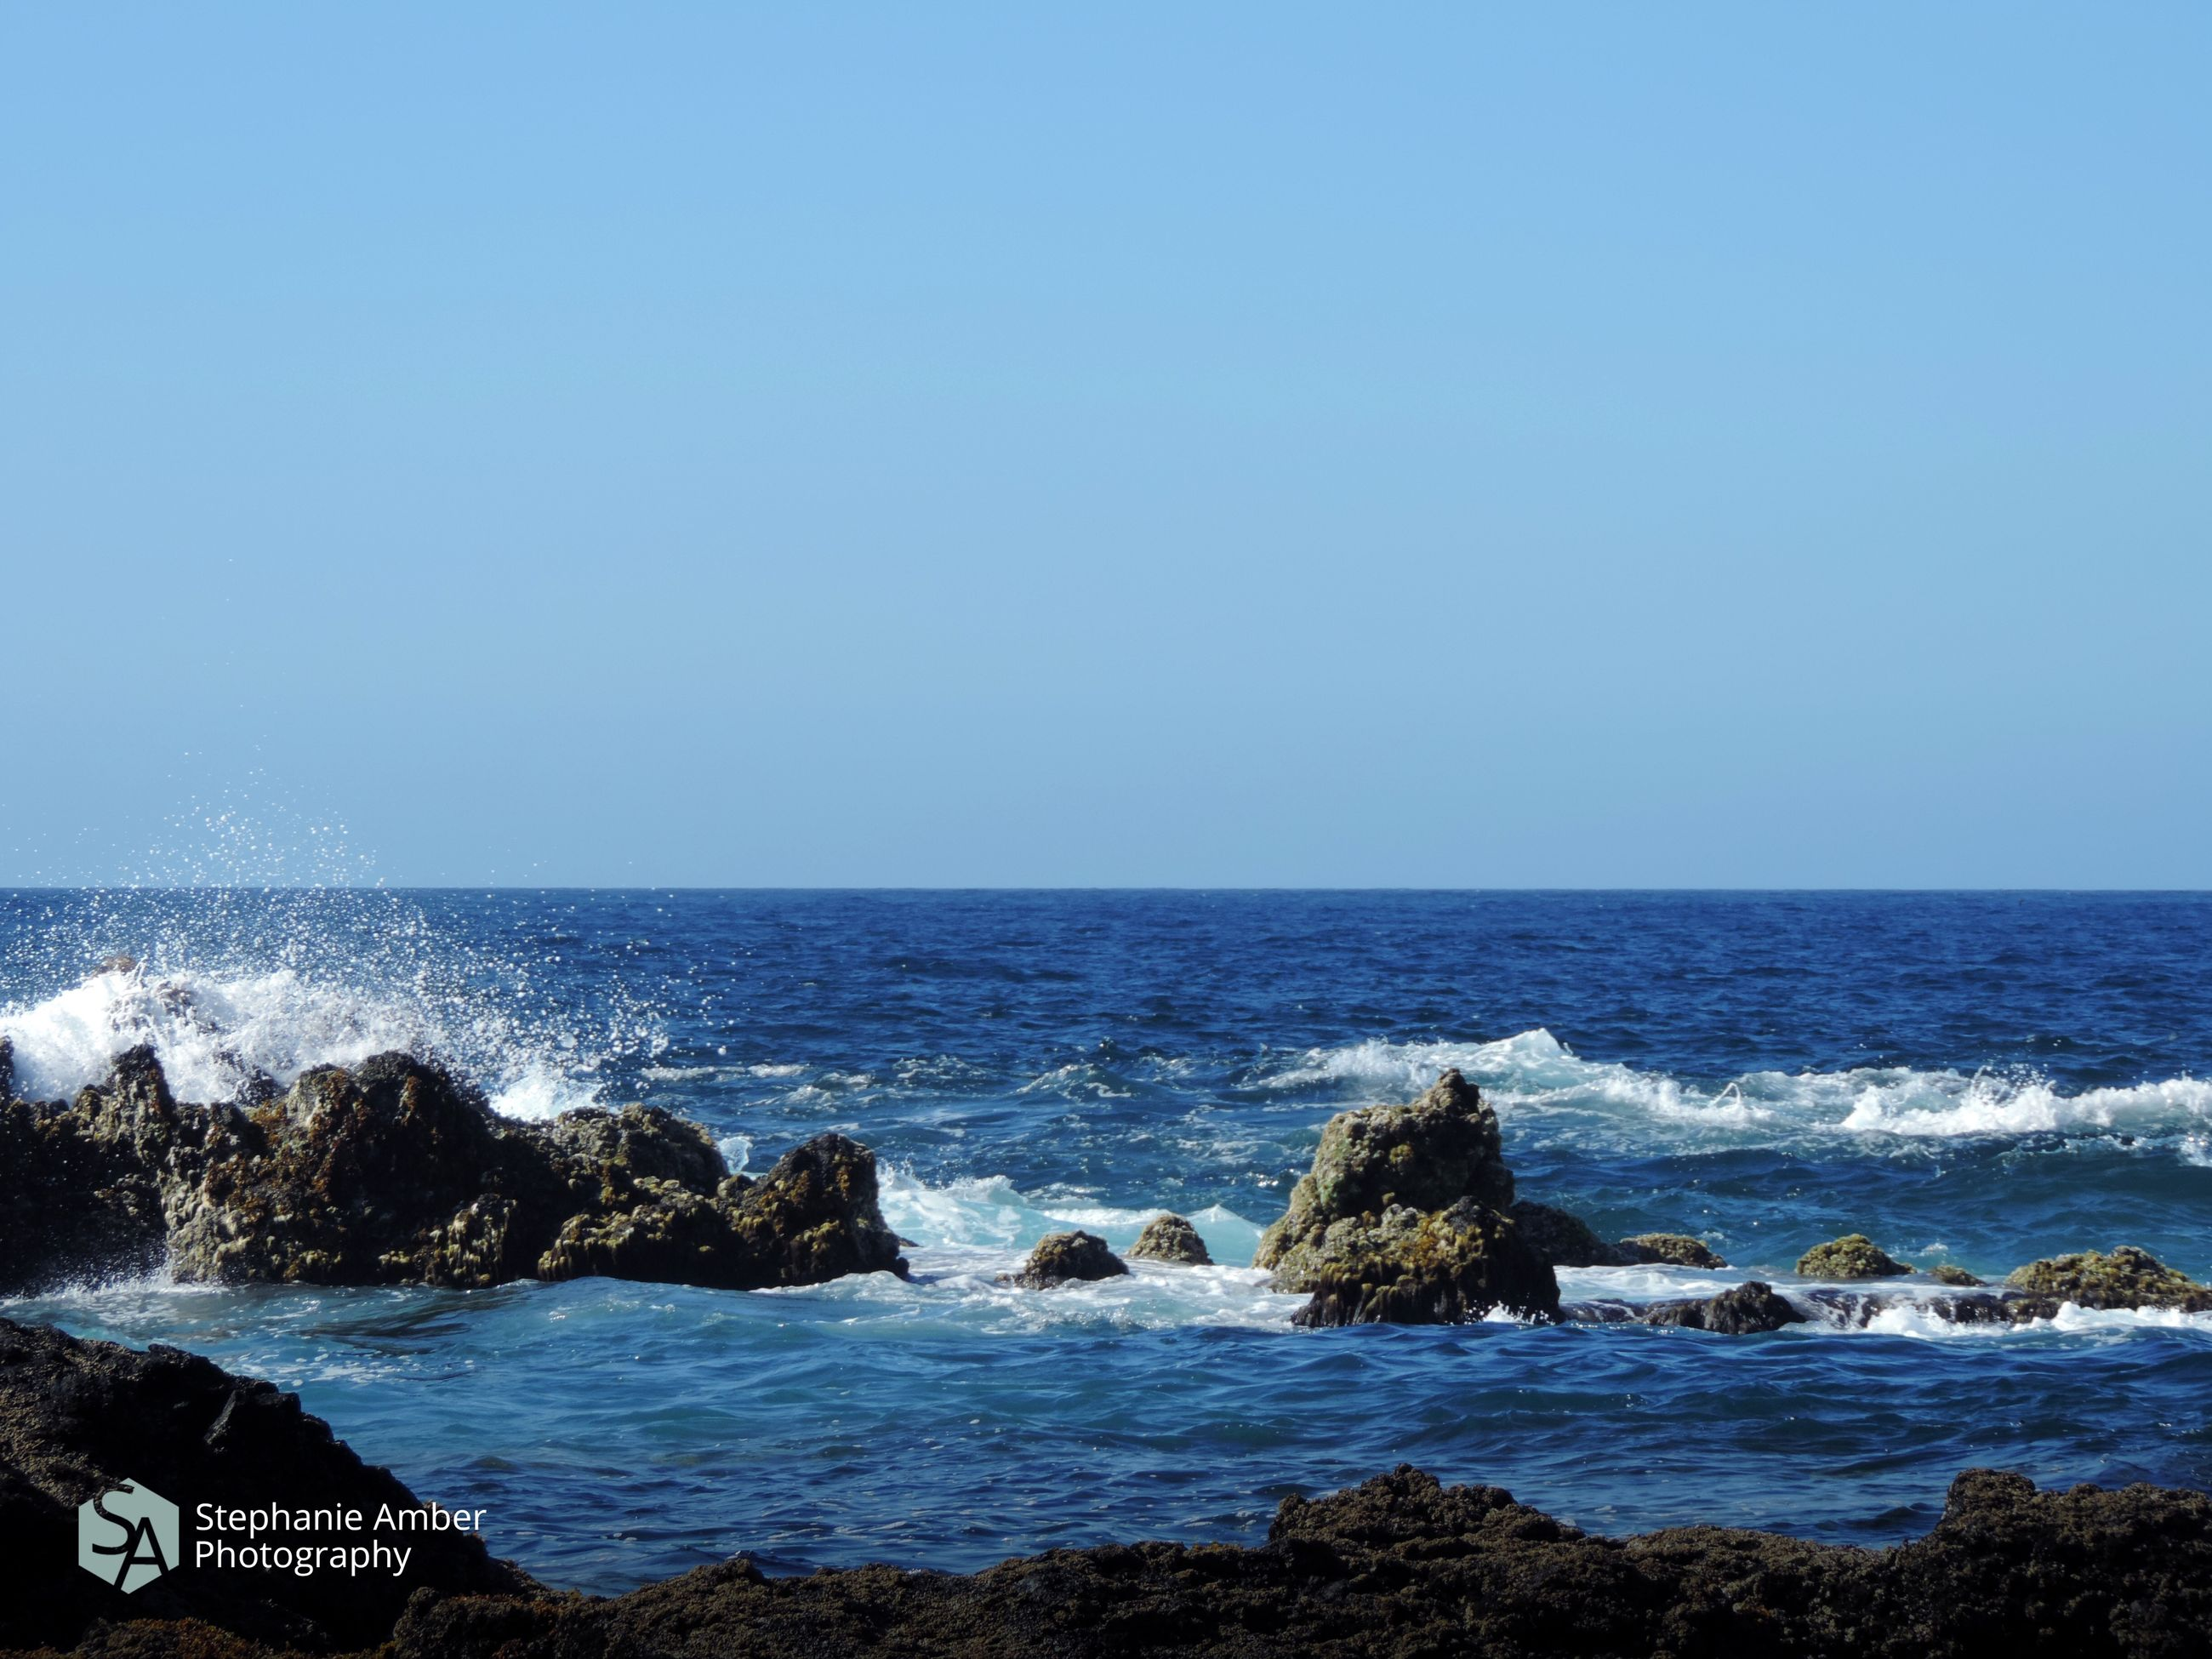 sea, water, horizon over water, horizon, sky, scenics - nature, beauty in nature, rock, solid, clear sky, rock - object, wave, land, beach, motion, nature, copy space, sport, day, no people, outdoors, power in nature, breaking, rocky coastline